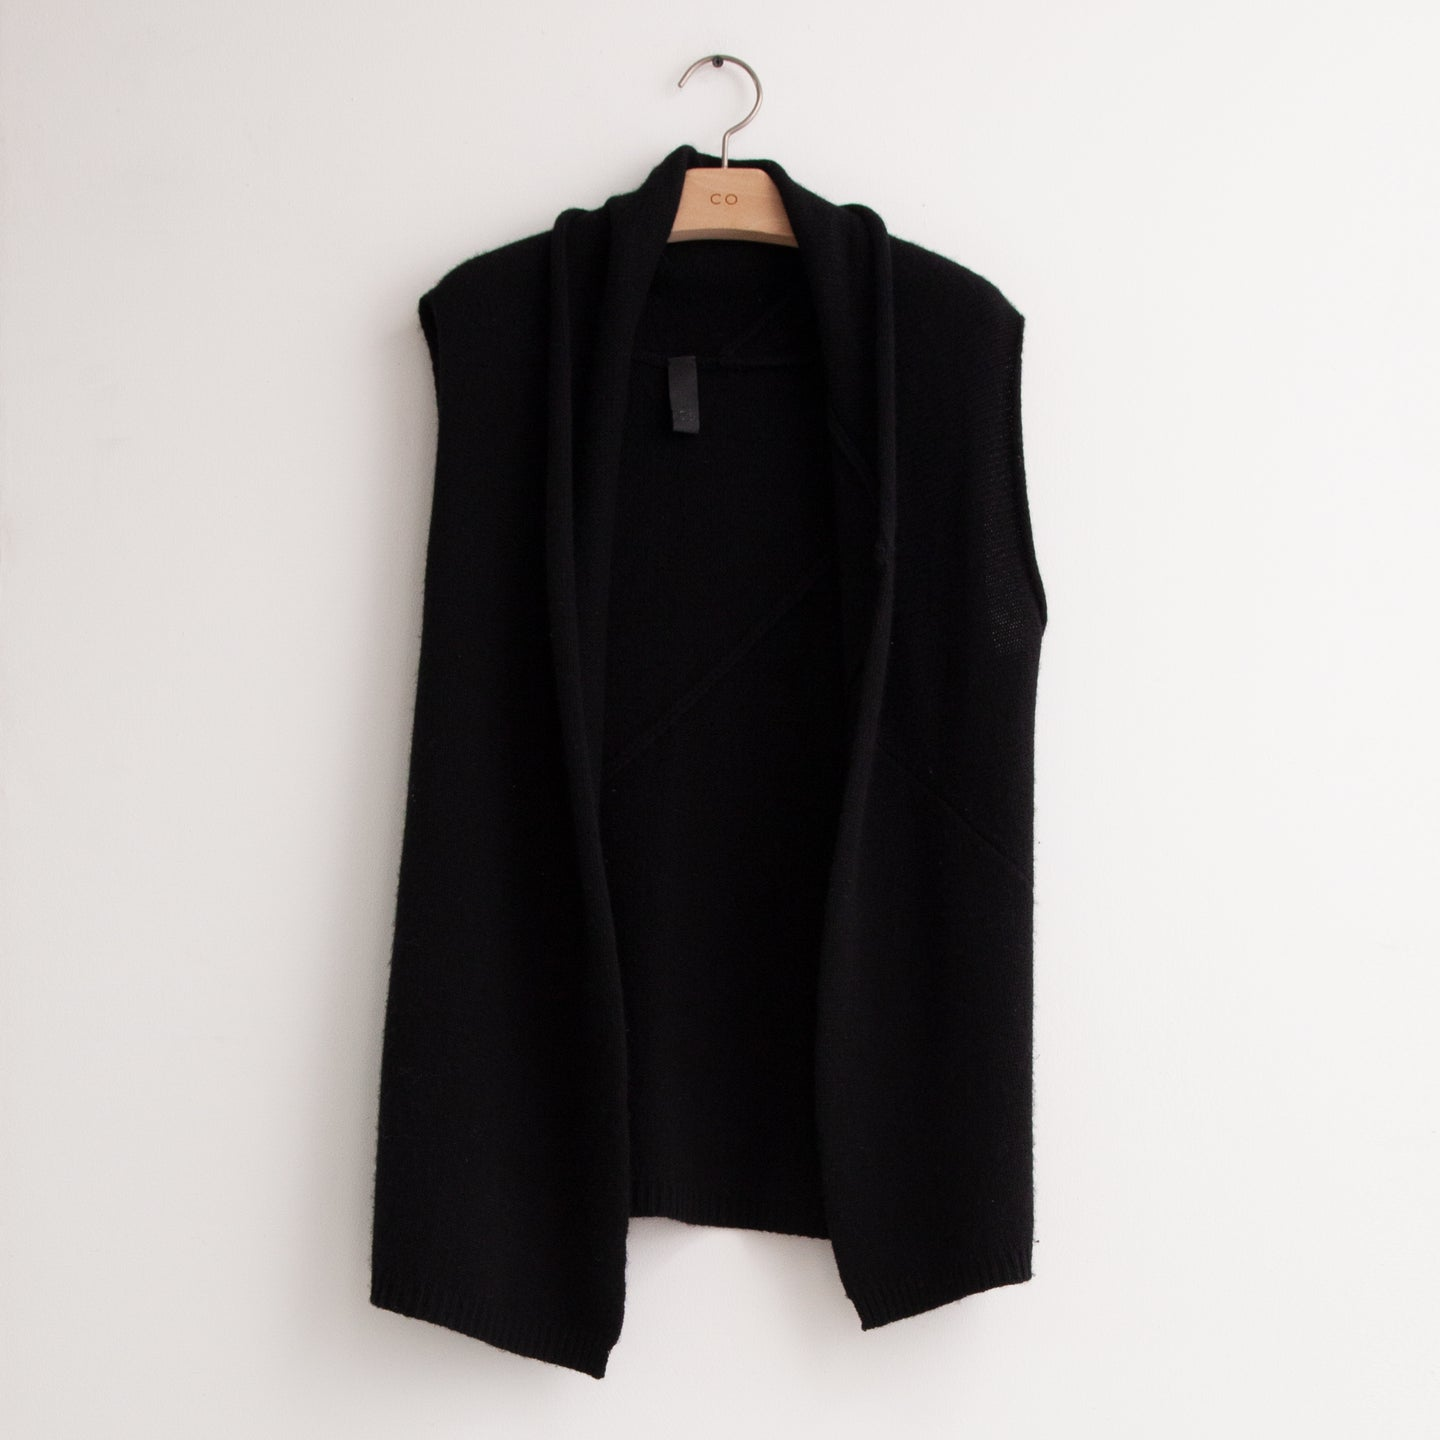 CO - Relaxed fit knit vest in black cashmere